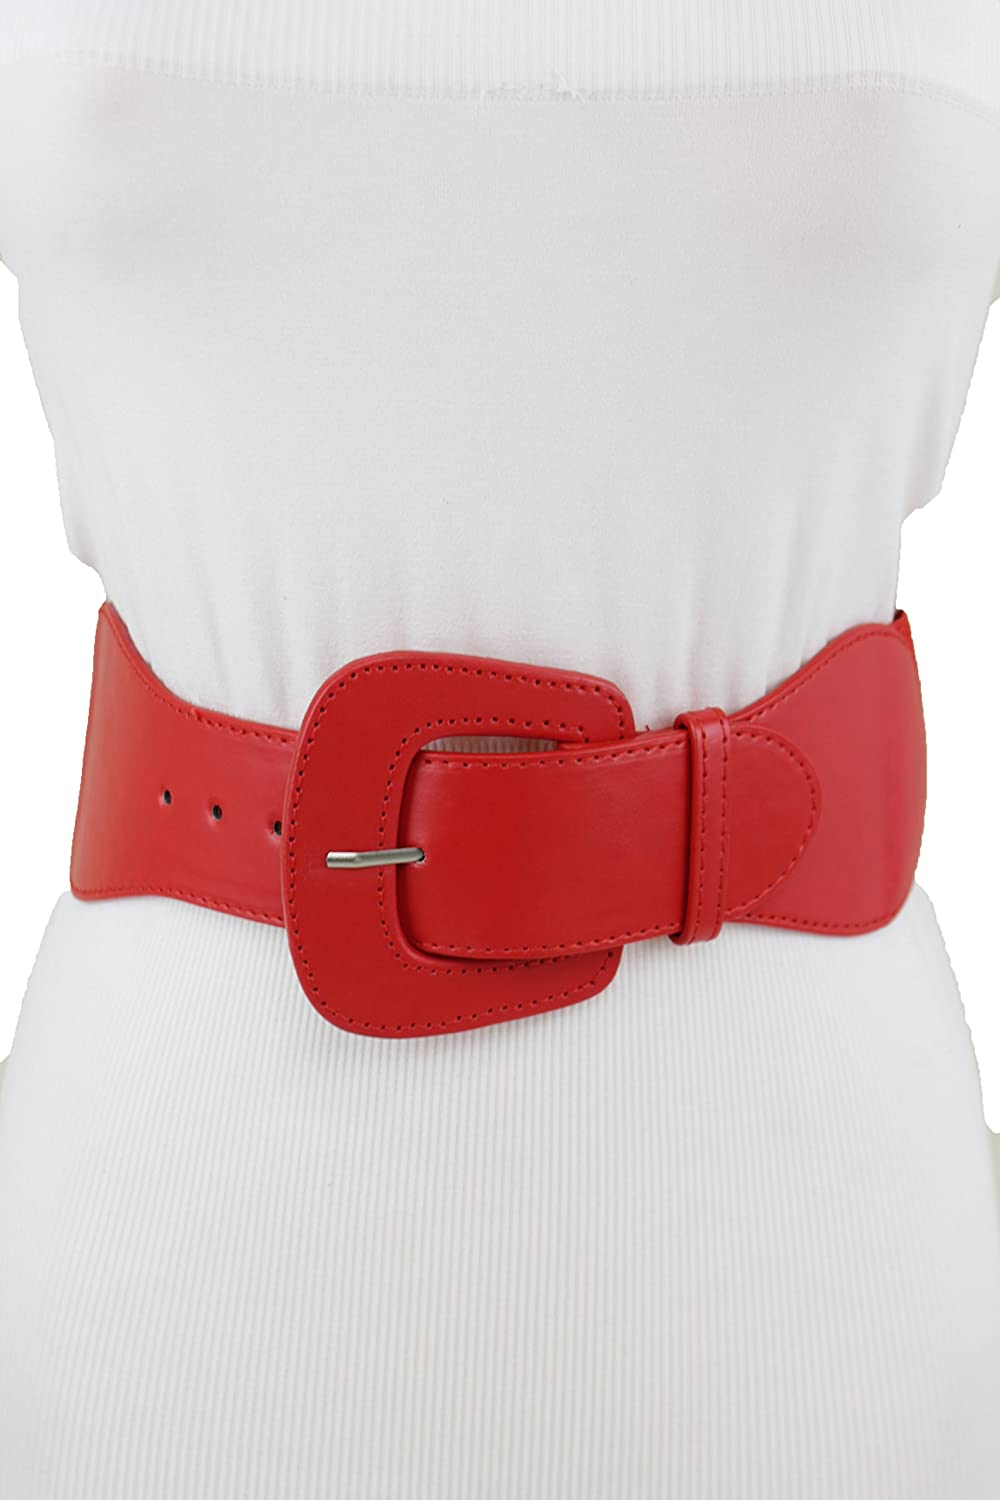 5d723bb36d2 TFJ Women Western Elastic Wide Red Belt Faux Leather Big Square Buckle ML XL